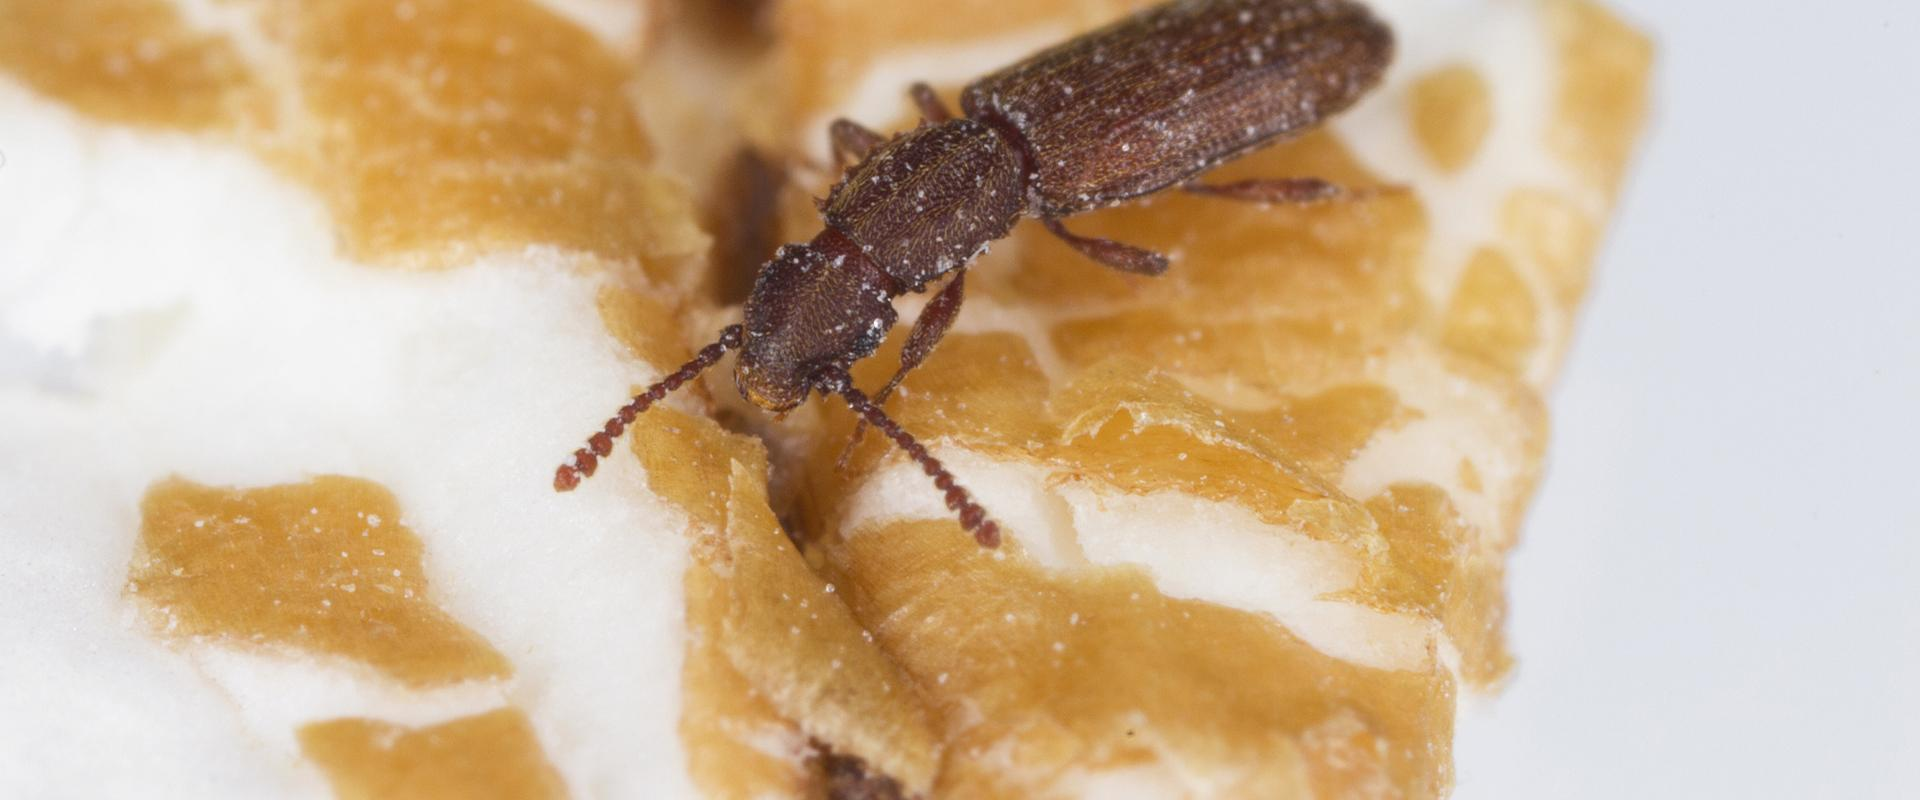 a flour beetle on pastry crumbs